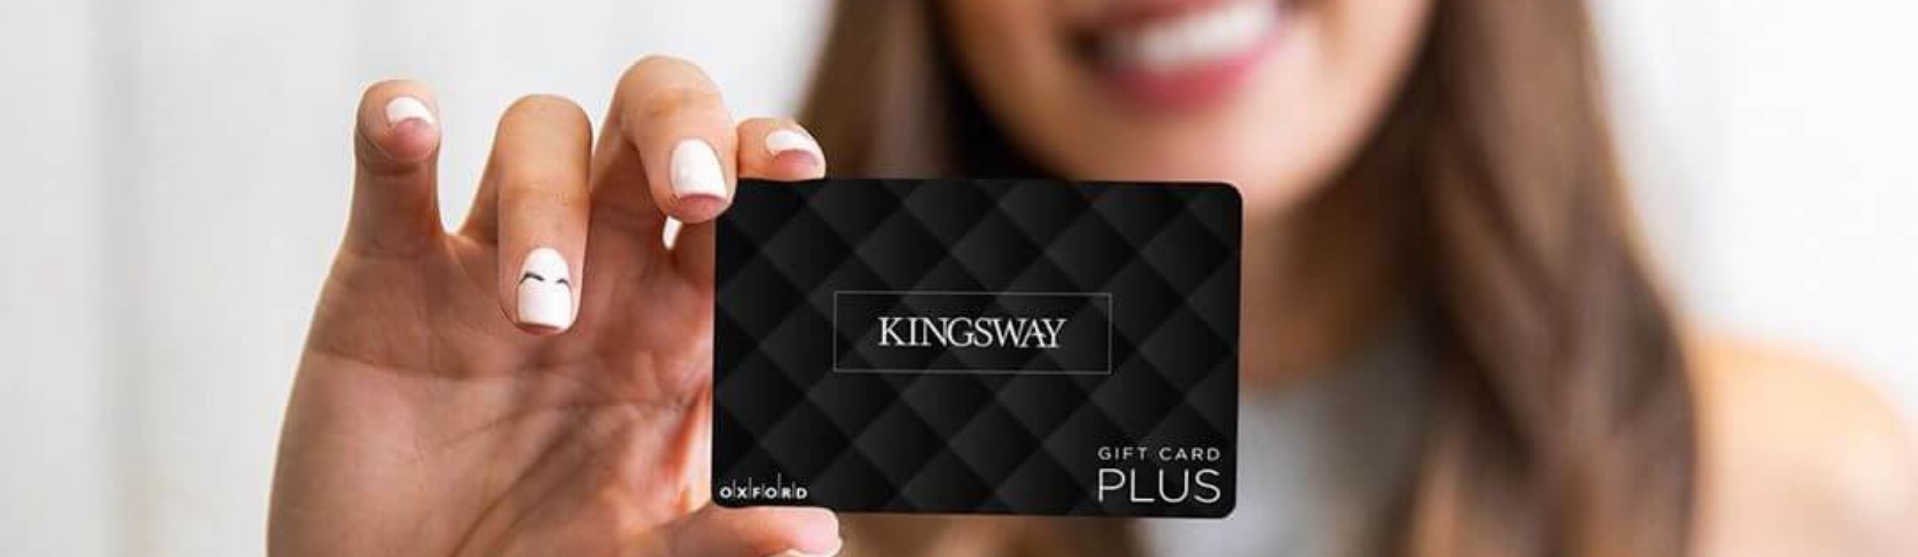 Woman holding up a gift card